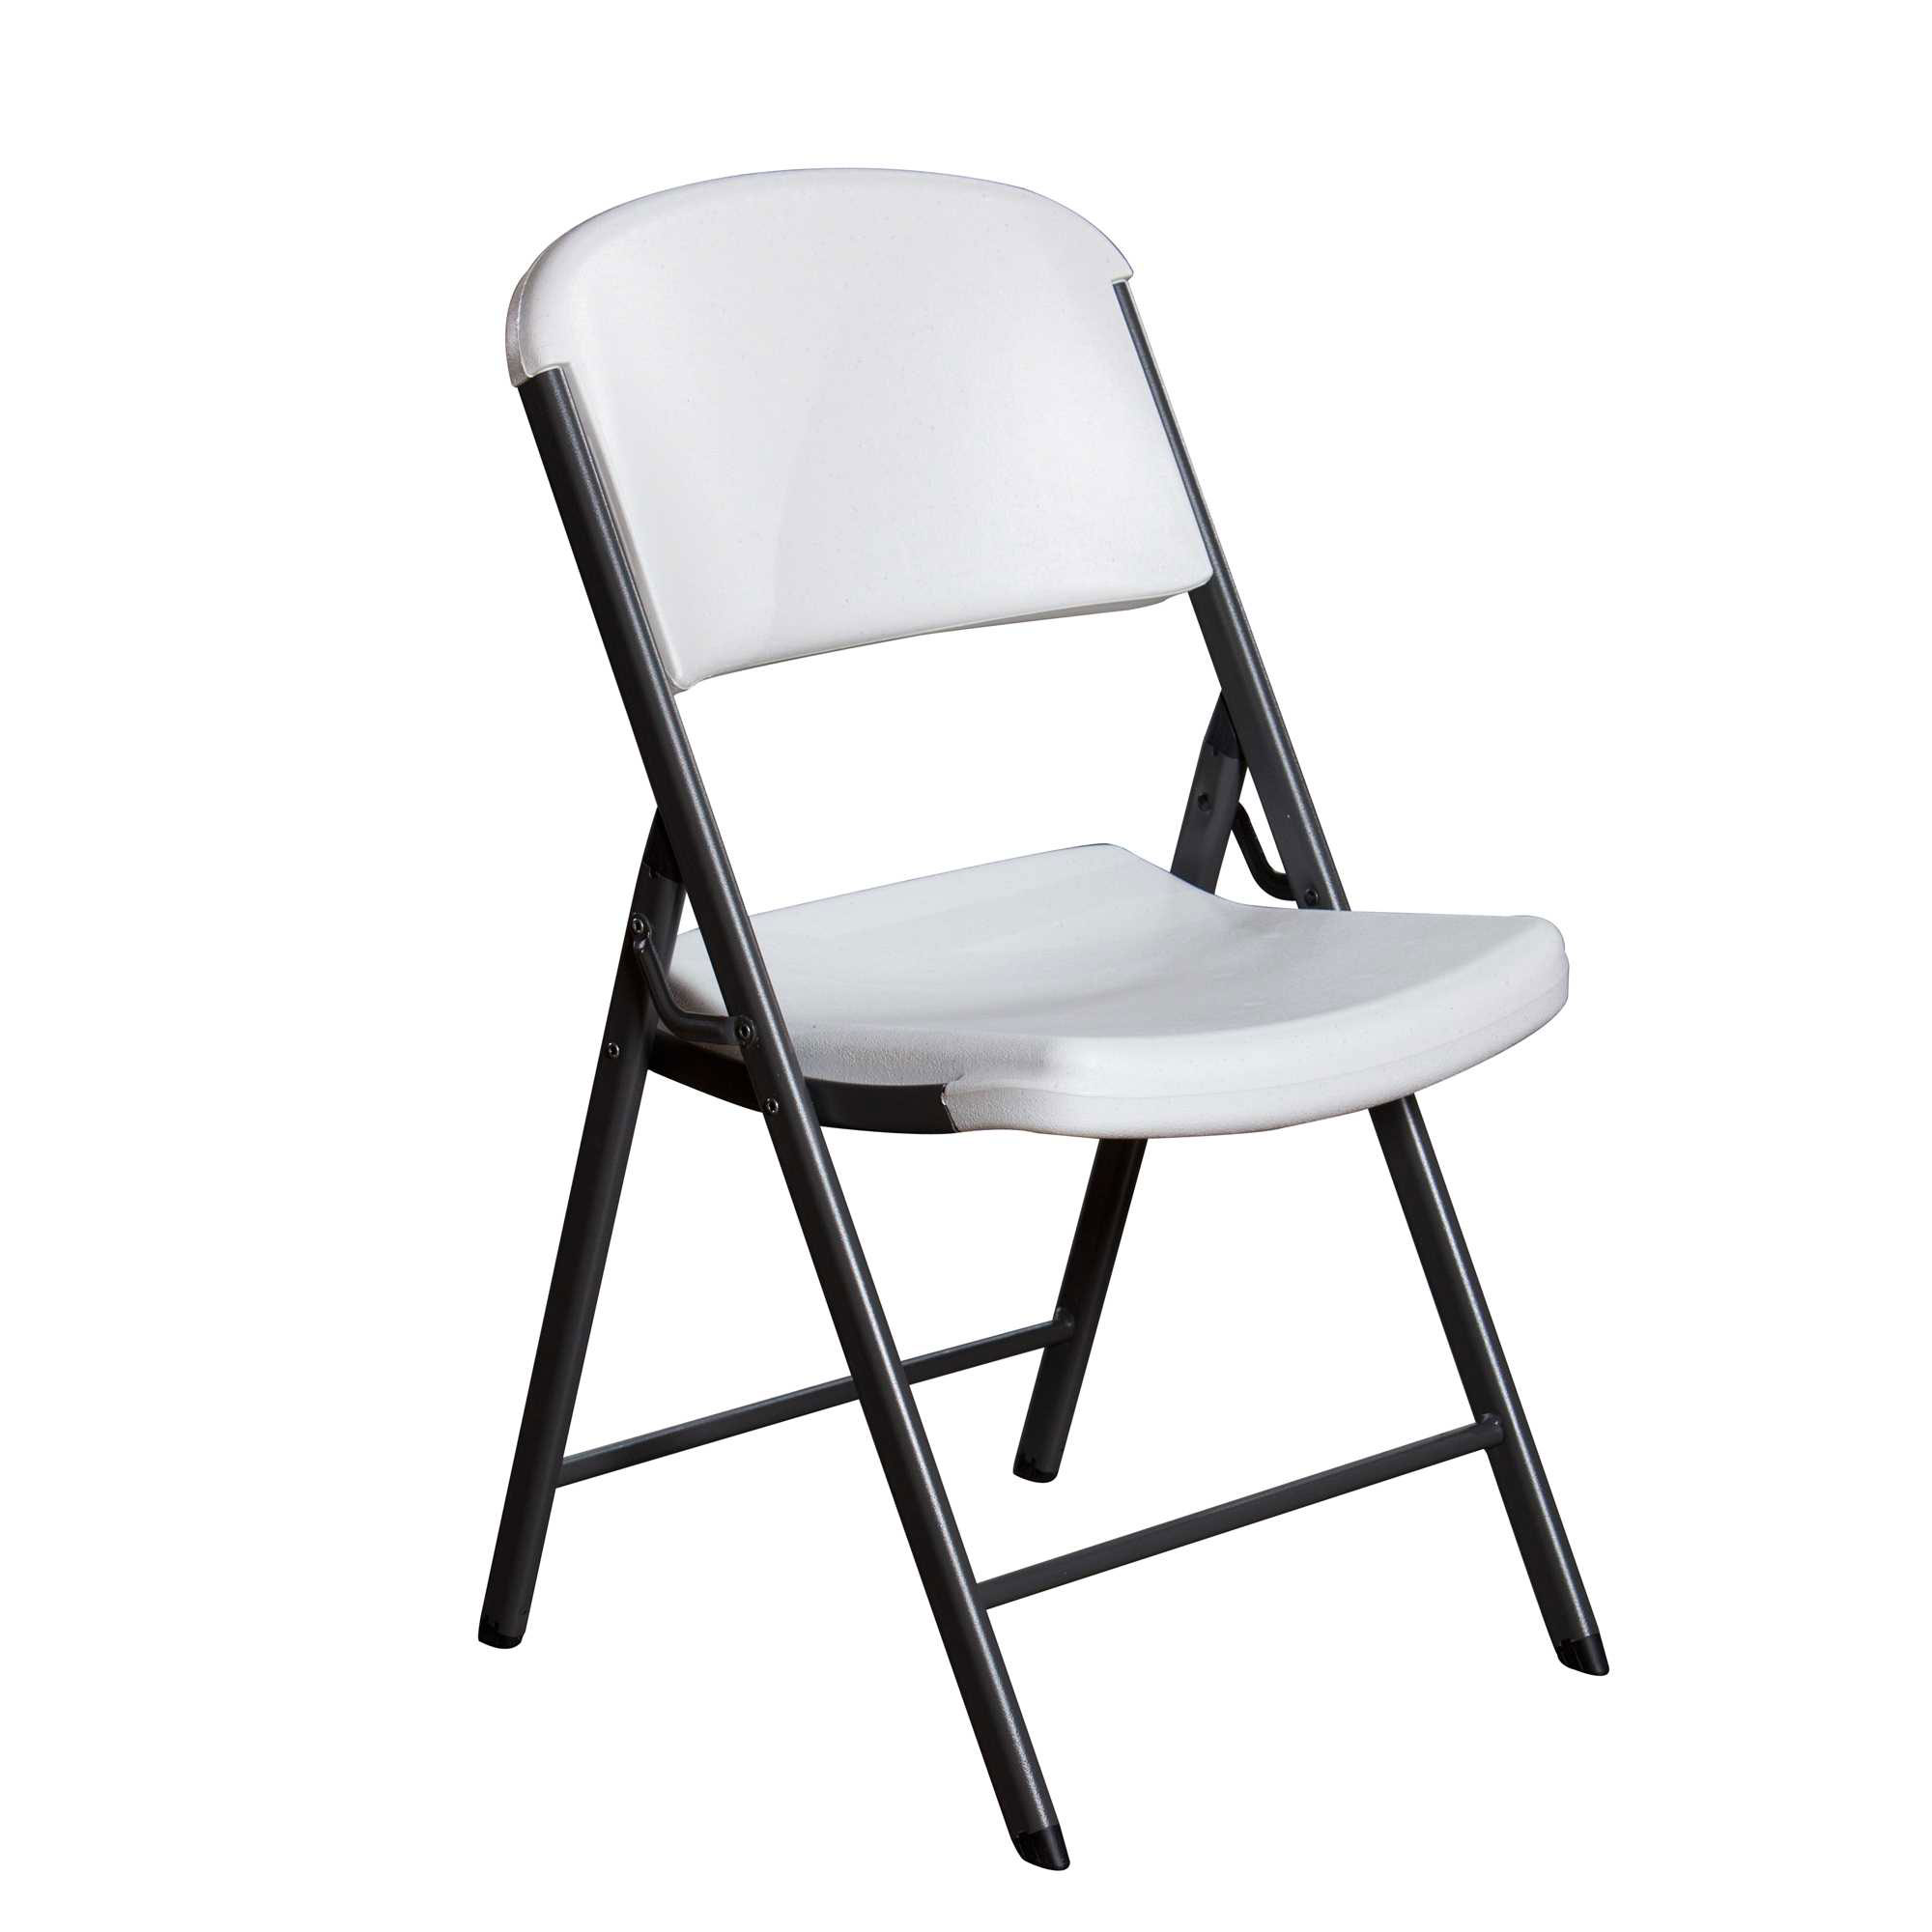 Lifetime Chair Lifetime Plastic Folding Chairs 32 Pack